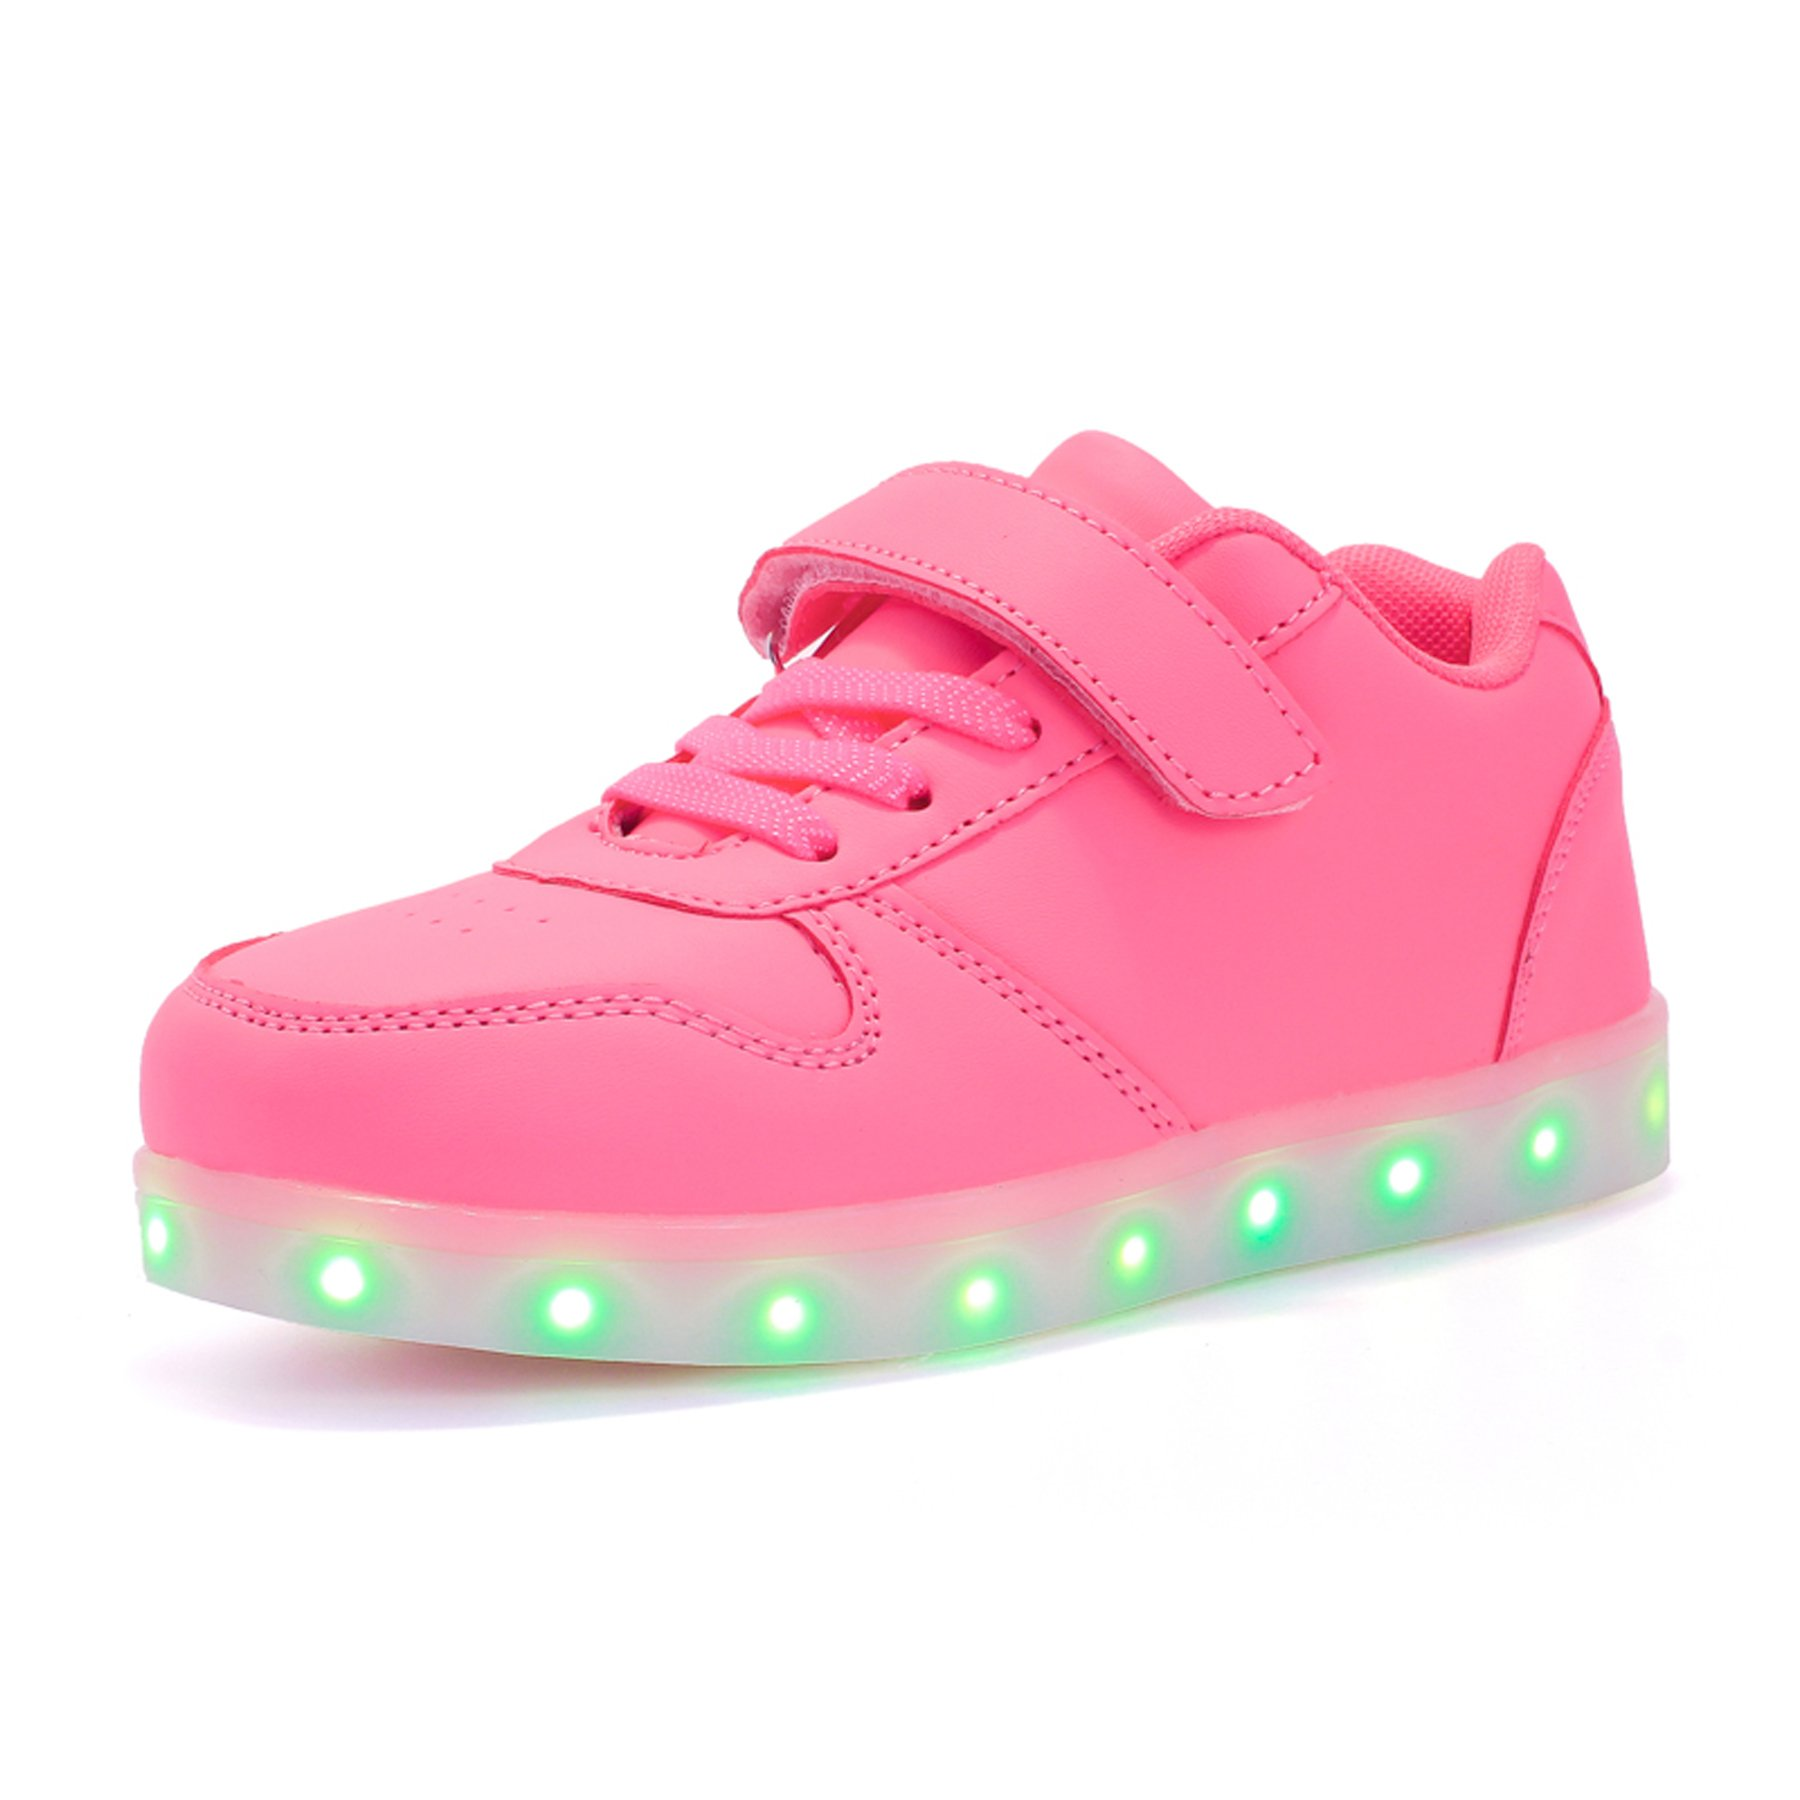 Voovix Kids Led Light up Shoes Flashing Low-top Sneakers for Boys and Girls Child Unisex(Pink,US9.5/CN27)